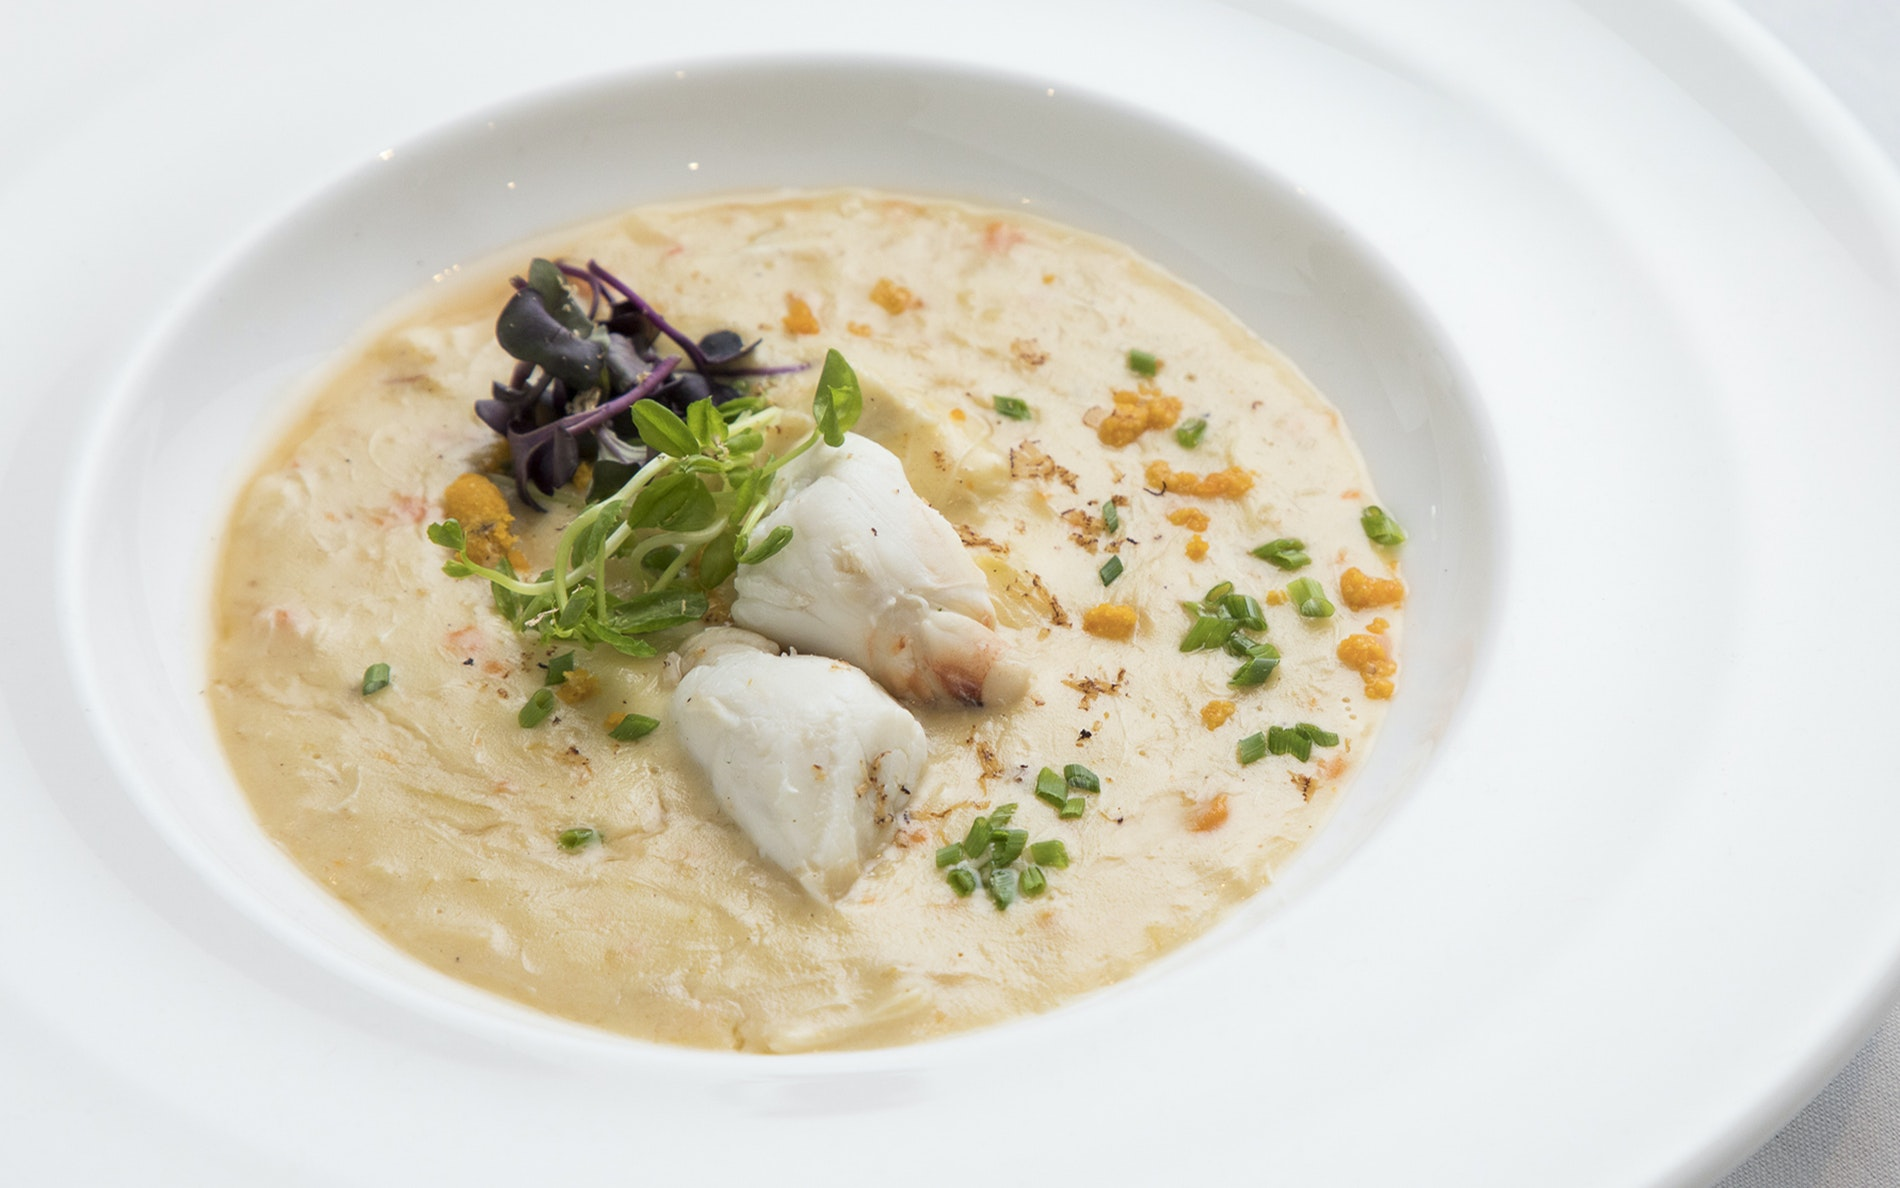 The recipe for creamy she-crab soup was developed for a visit from President William Taft.